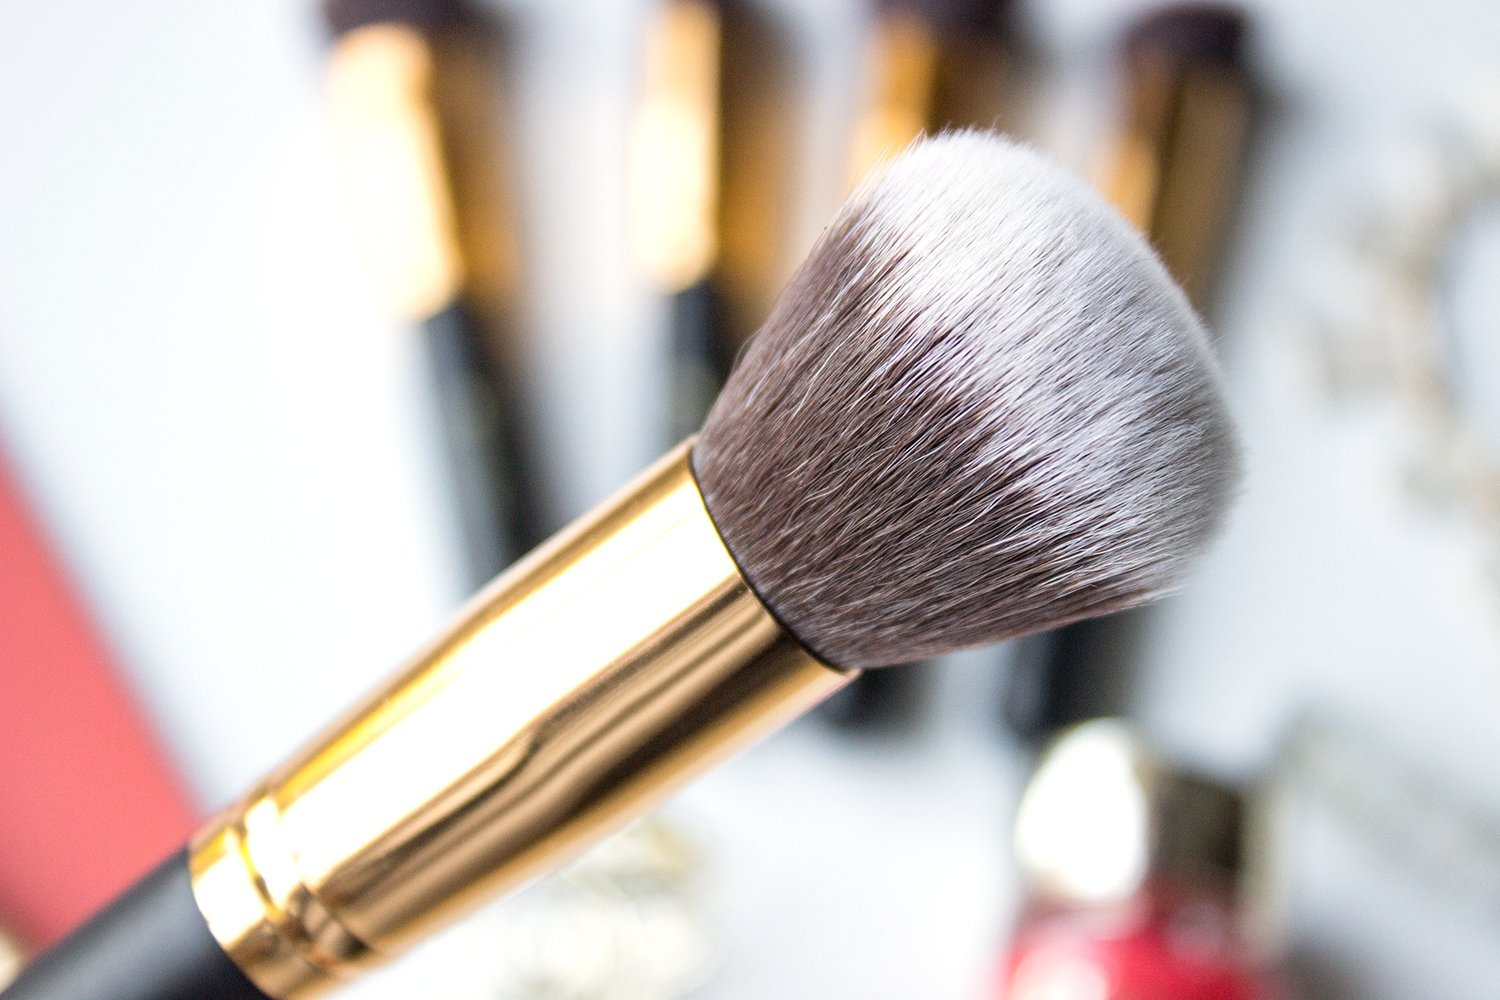 136d57942b9b7 113 Round Blending Face Brush. I really love using this brush for buffing  in liquid foundations. It ll give you that perfect